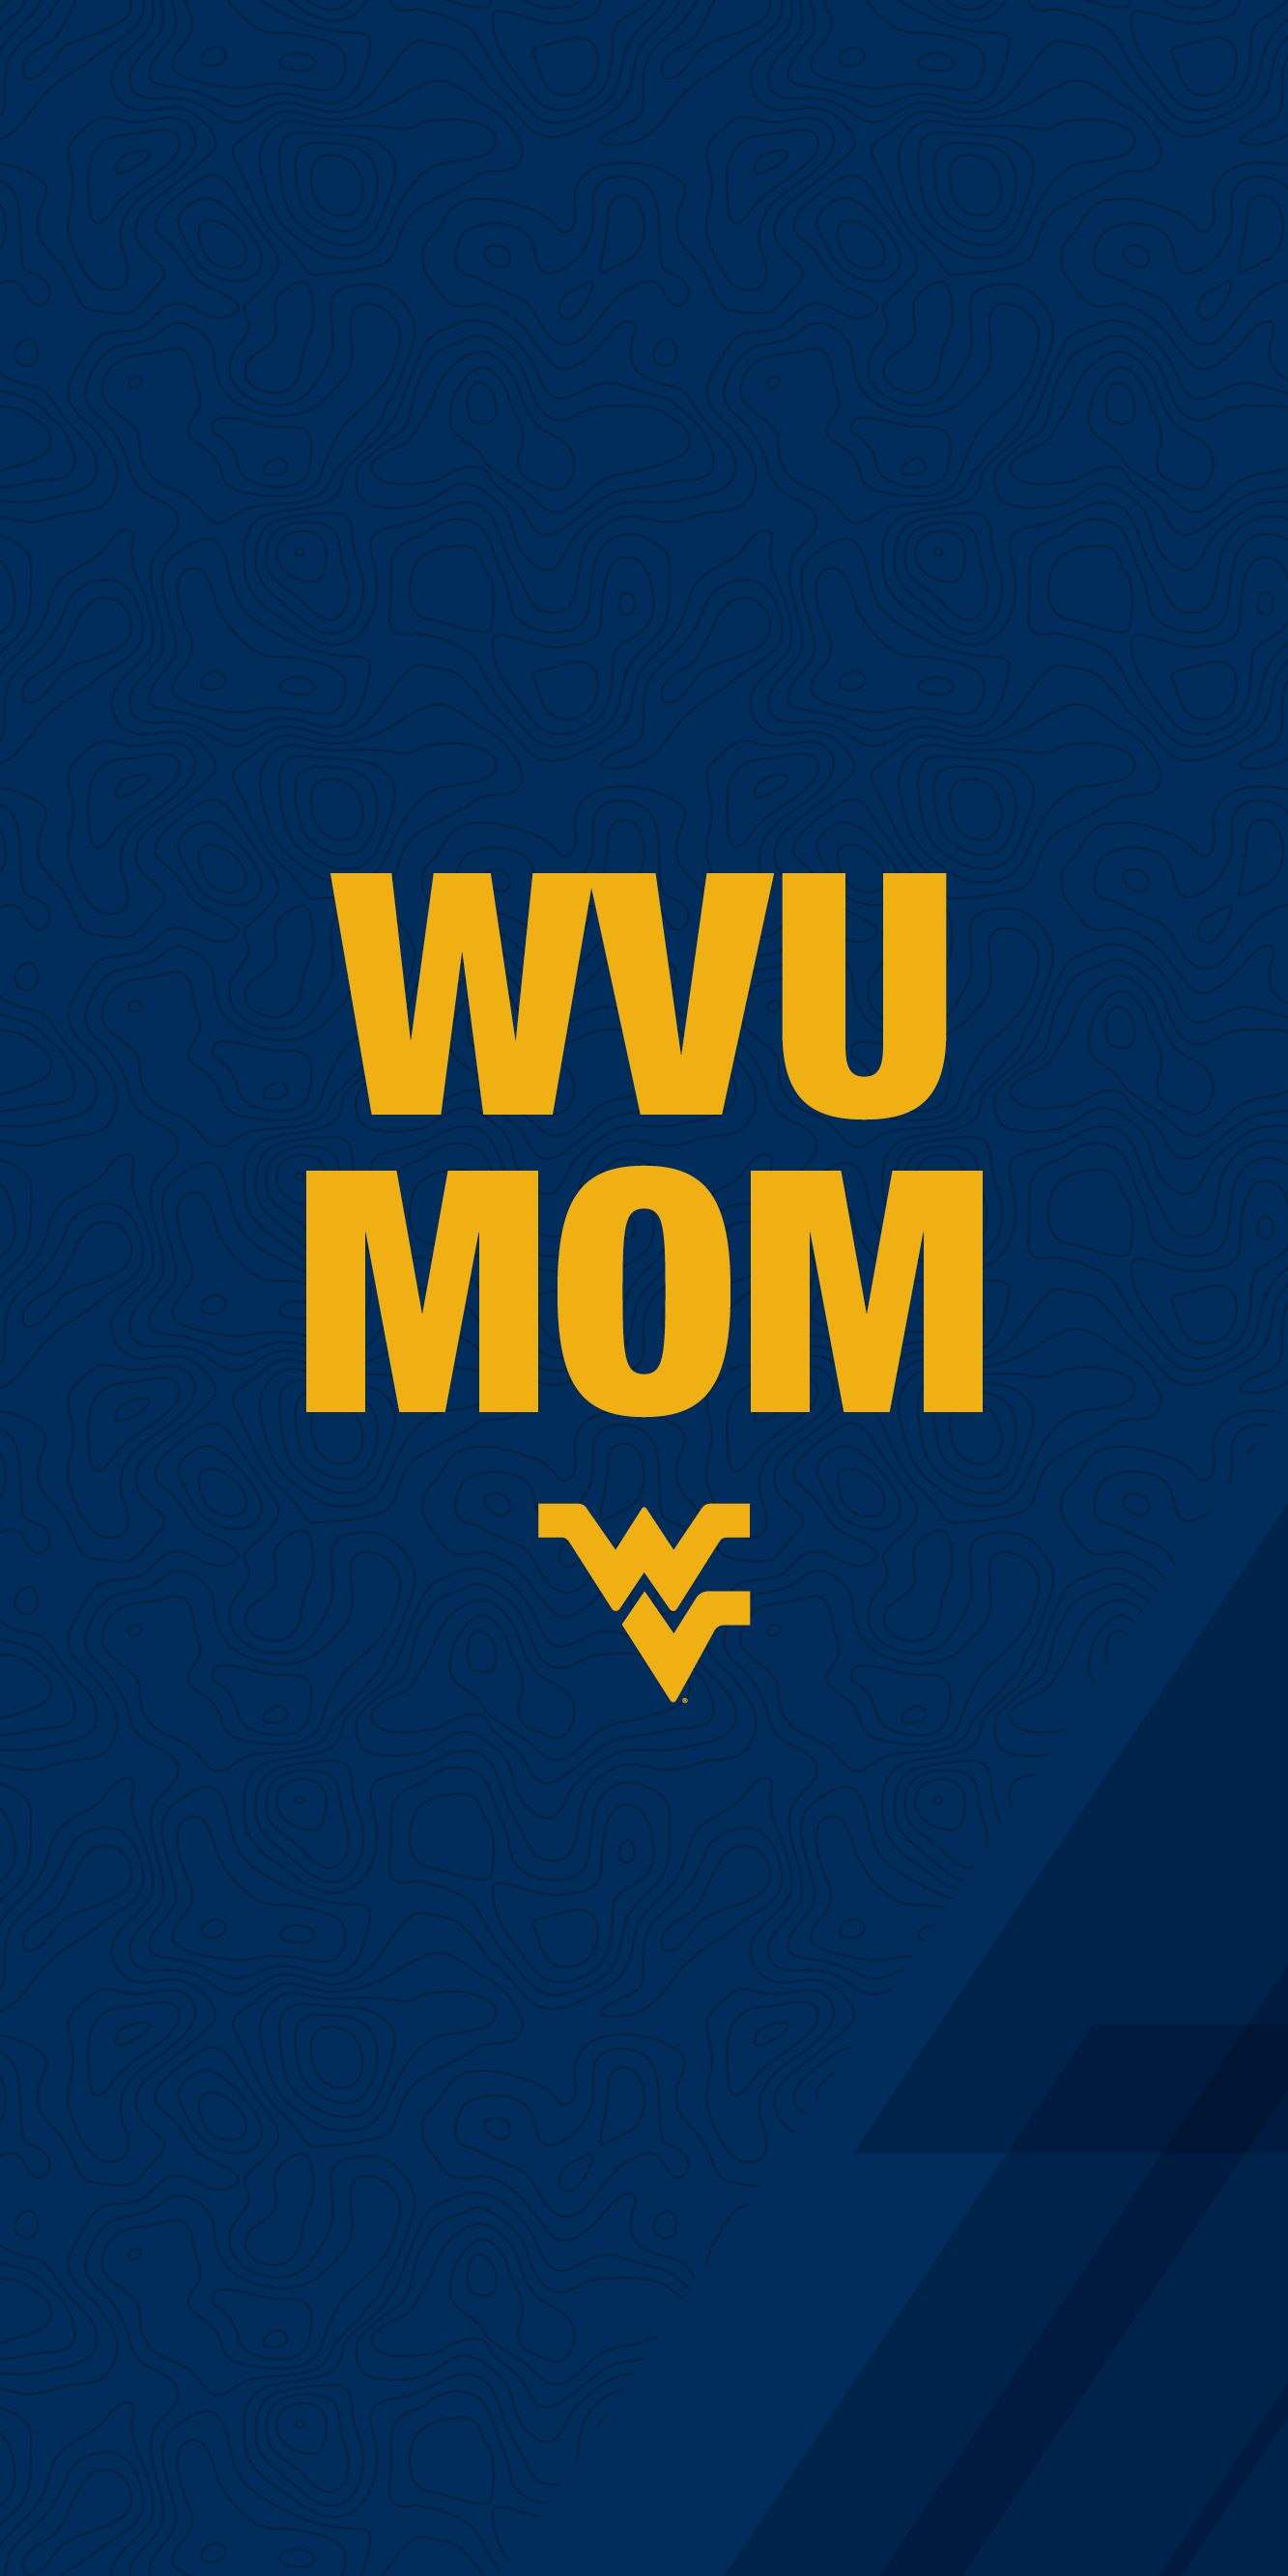 WVU Mom mobile wallpaper